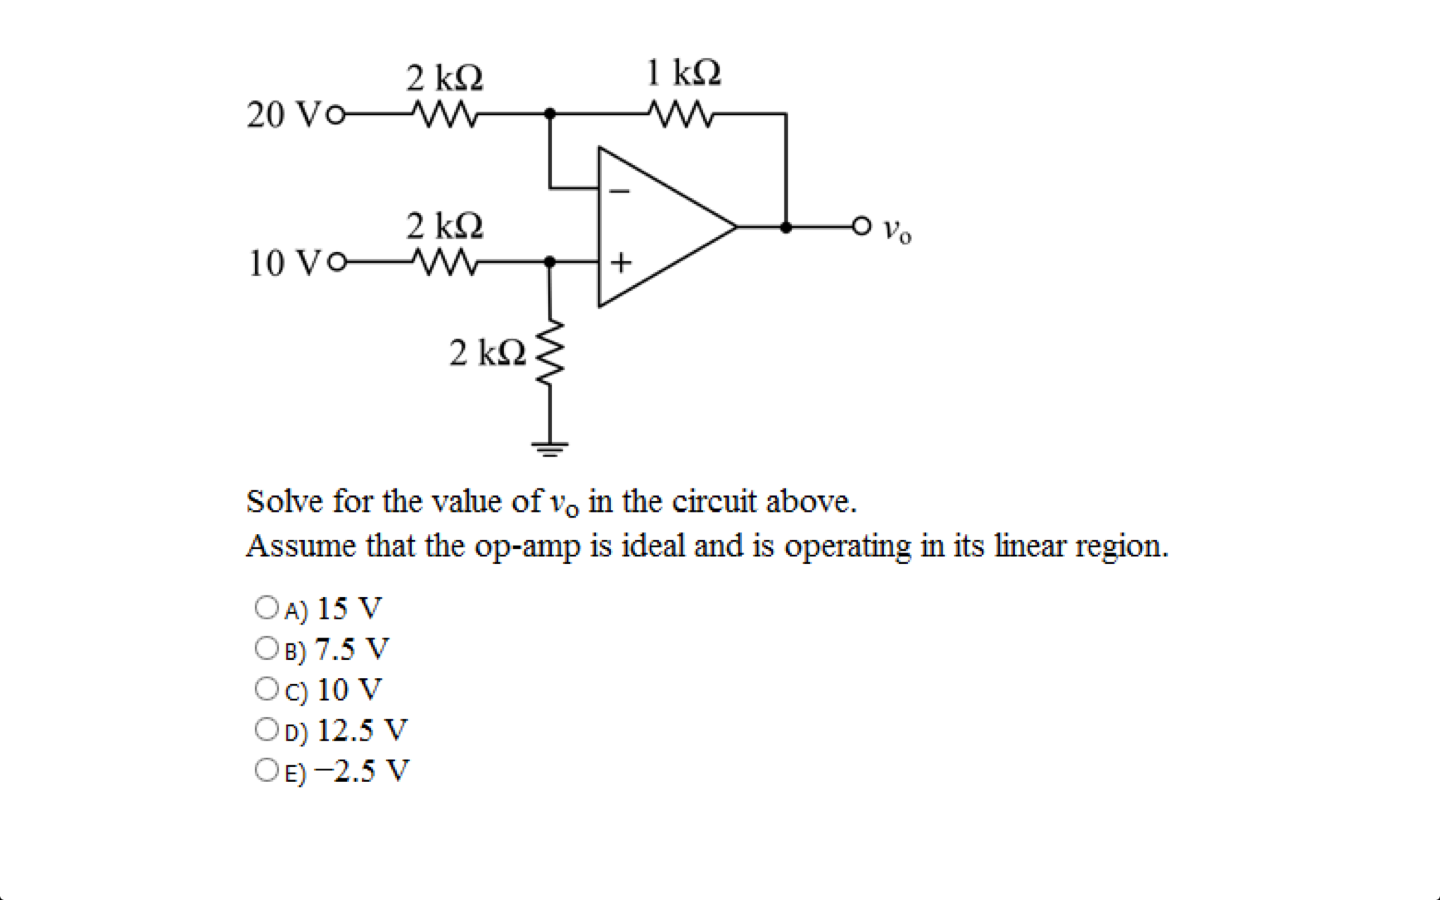 Electrical Engineering help on writing a paper